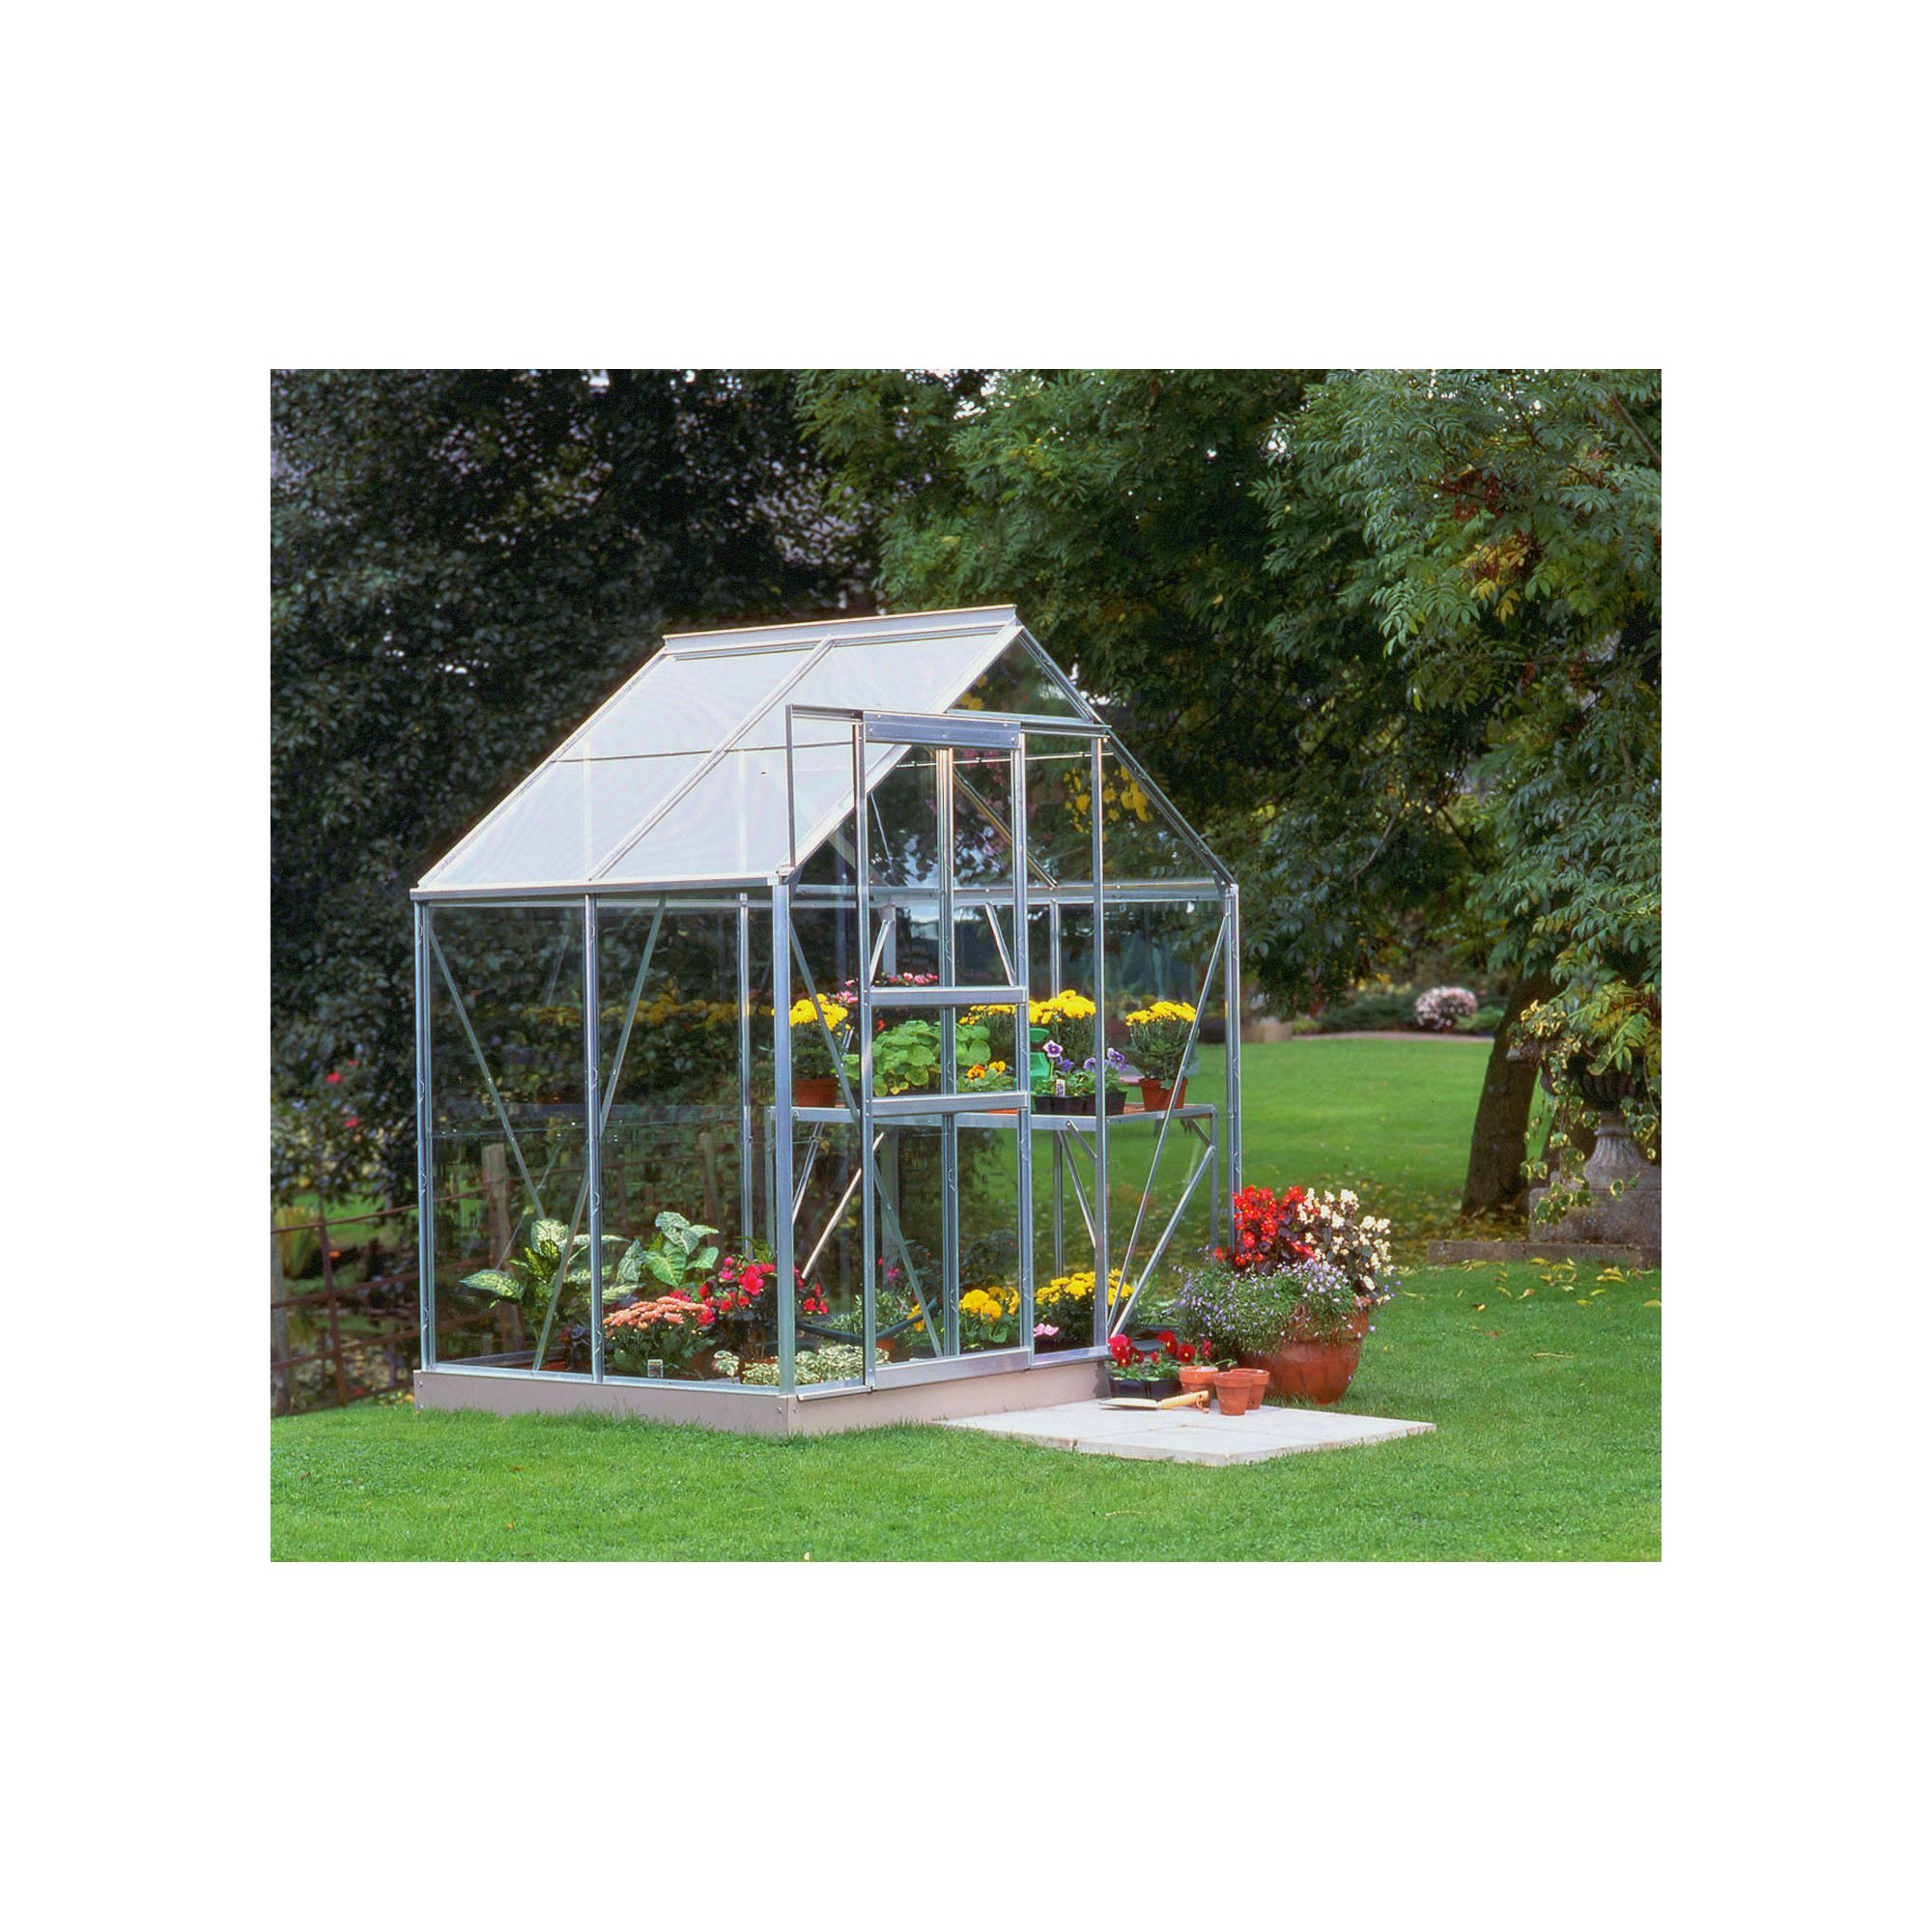 Halls 6x4 Popular Aluminium Greenhouse - Horticultural Glass at Tesco Direct